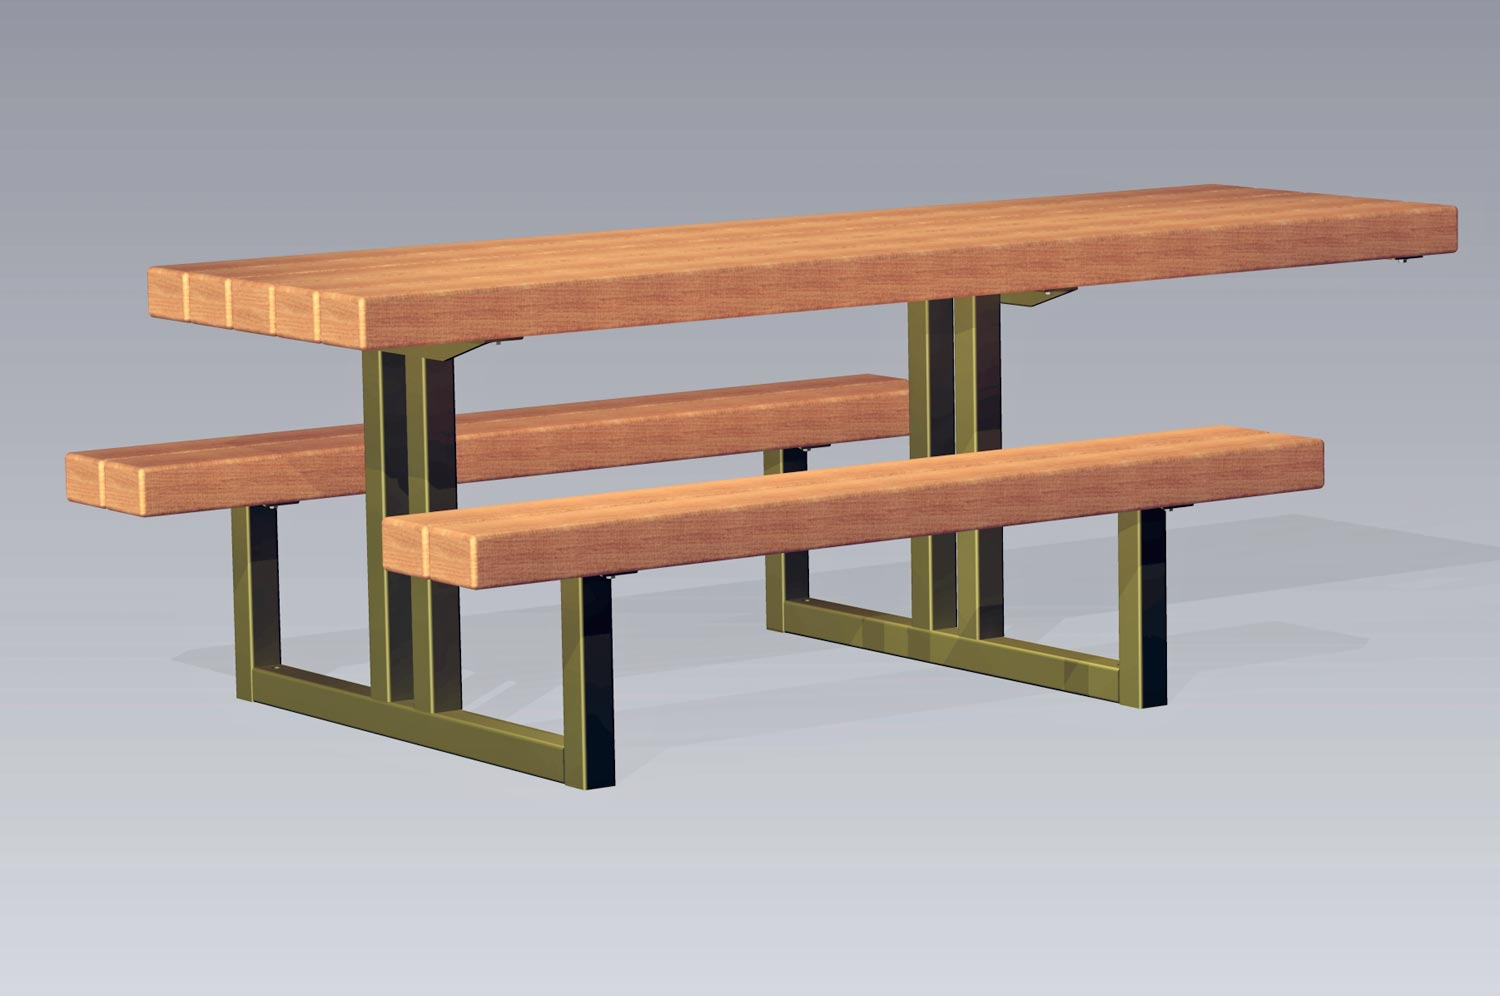 TimberForm Site Furnishings - Metal wood picnic table